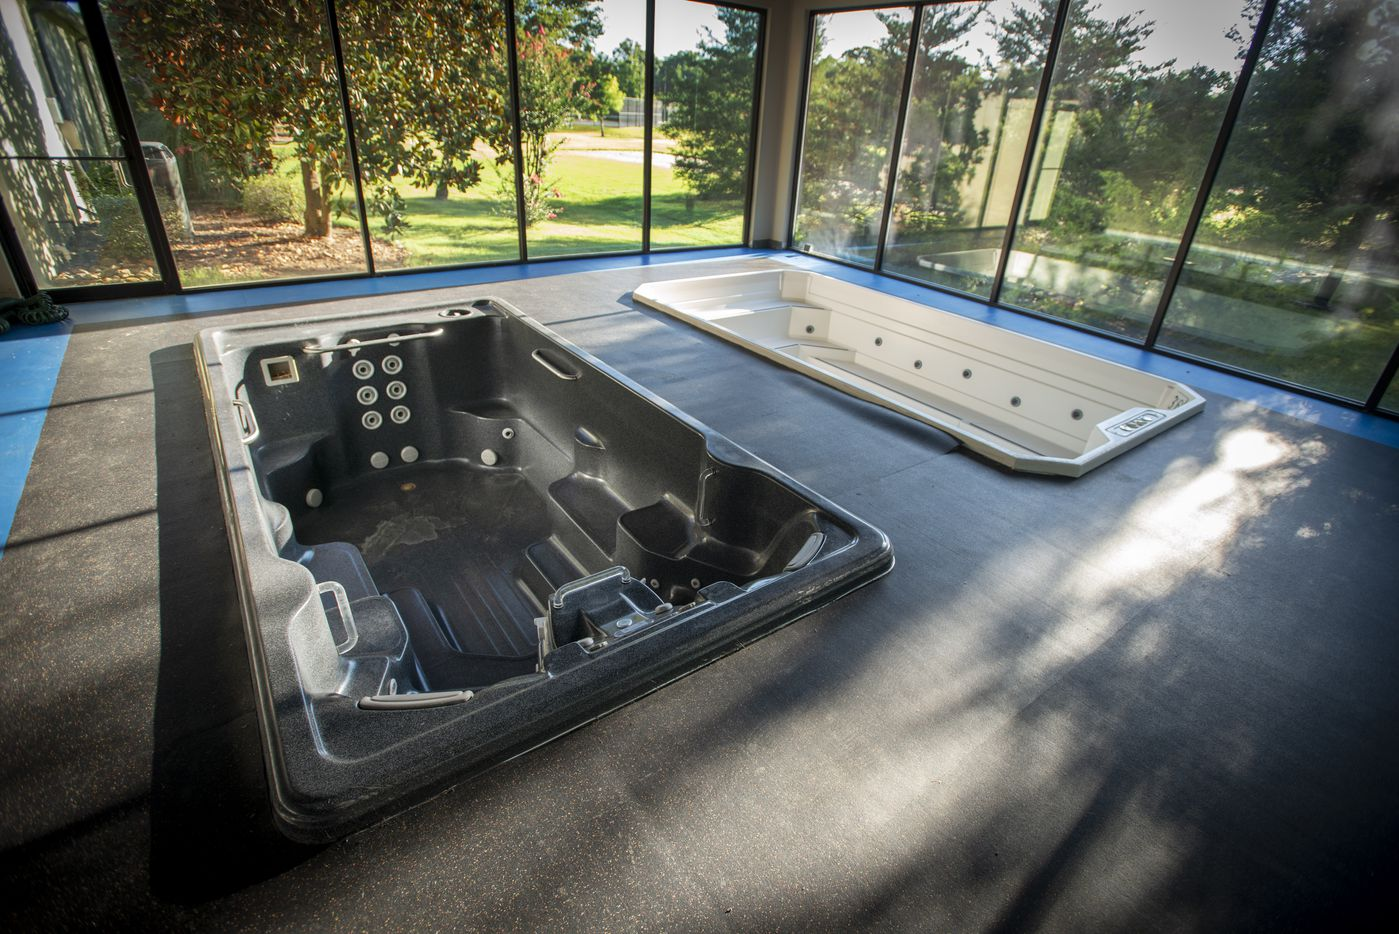 Jacuzzis inside the gymnasium at 5101 Kensington Ct., in Flower Mound, Texas on August 19, 2020. (Robert W. Hart/Special Contributor)